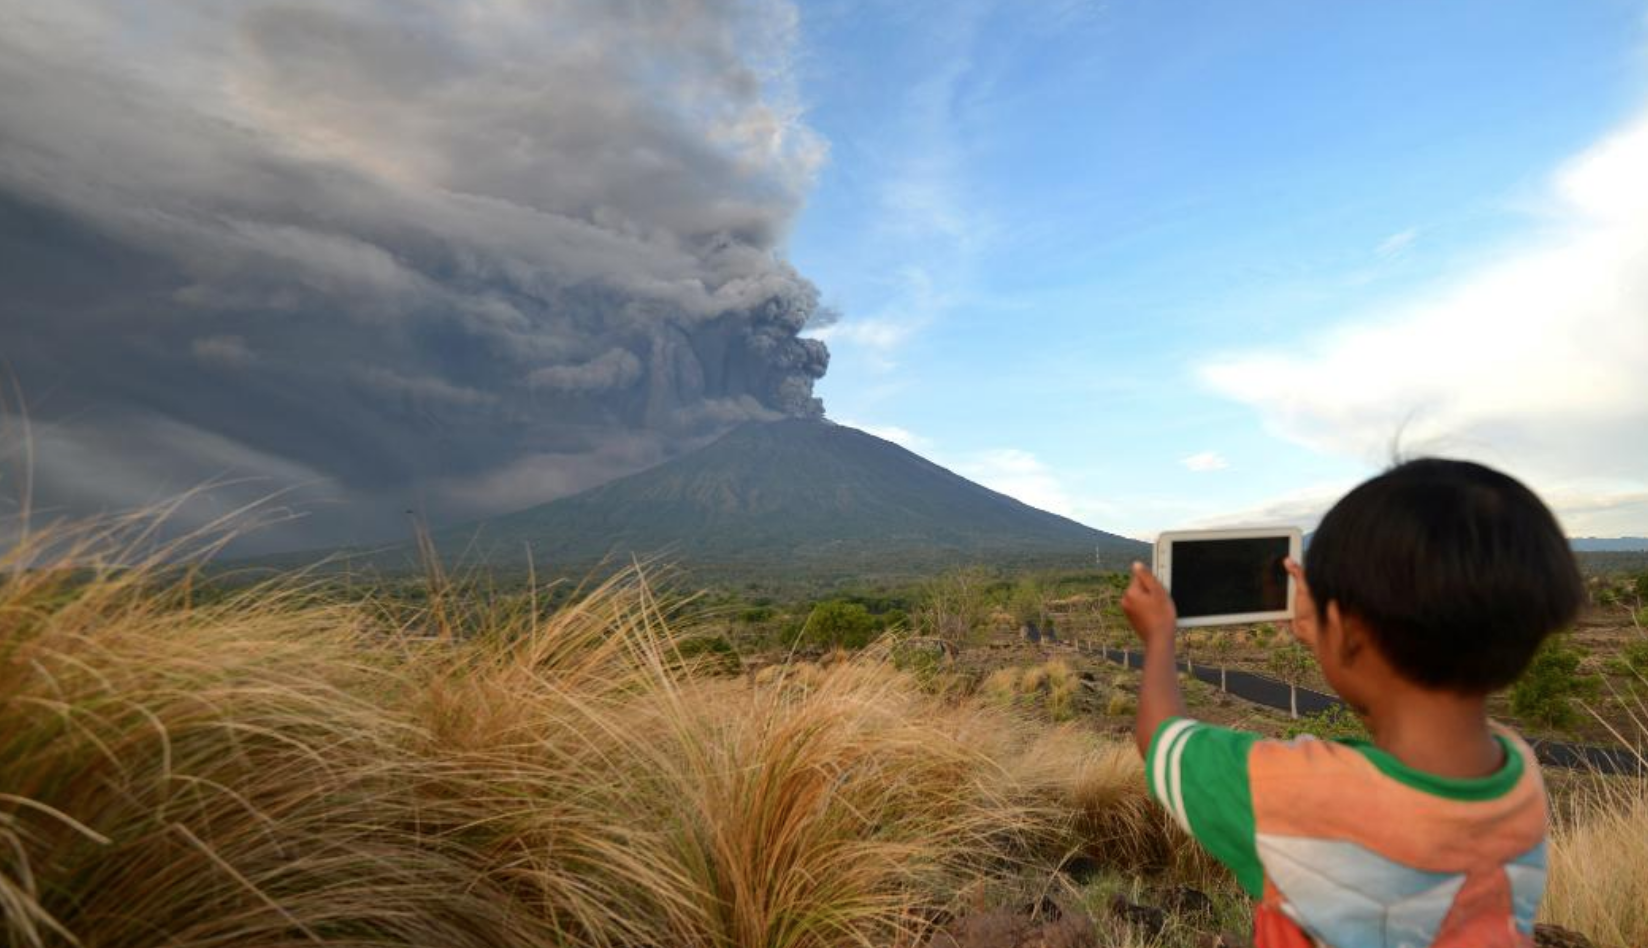 Ongoing Bali volcanic threat – update